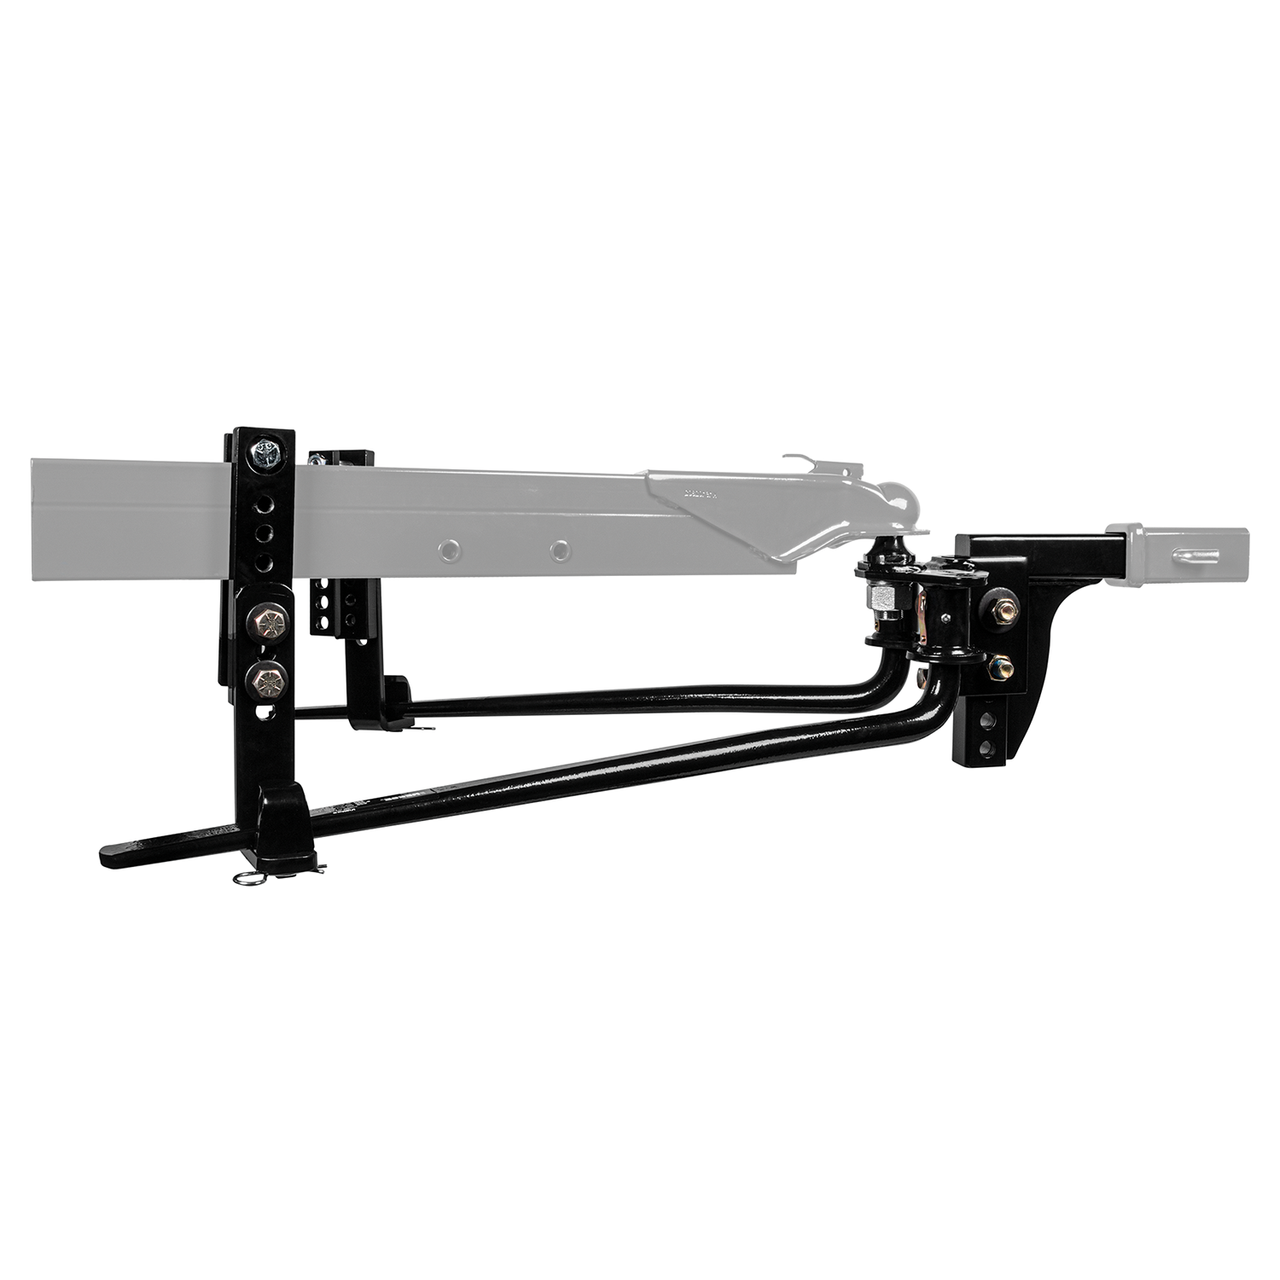 49912 --- Weight Distributing Hitch Kit w/Shank and Sway Control - 8,000lb